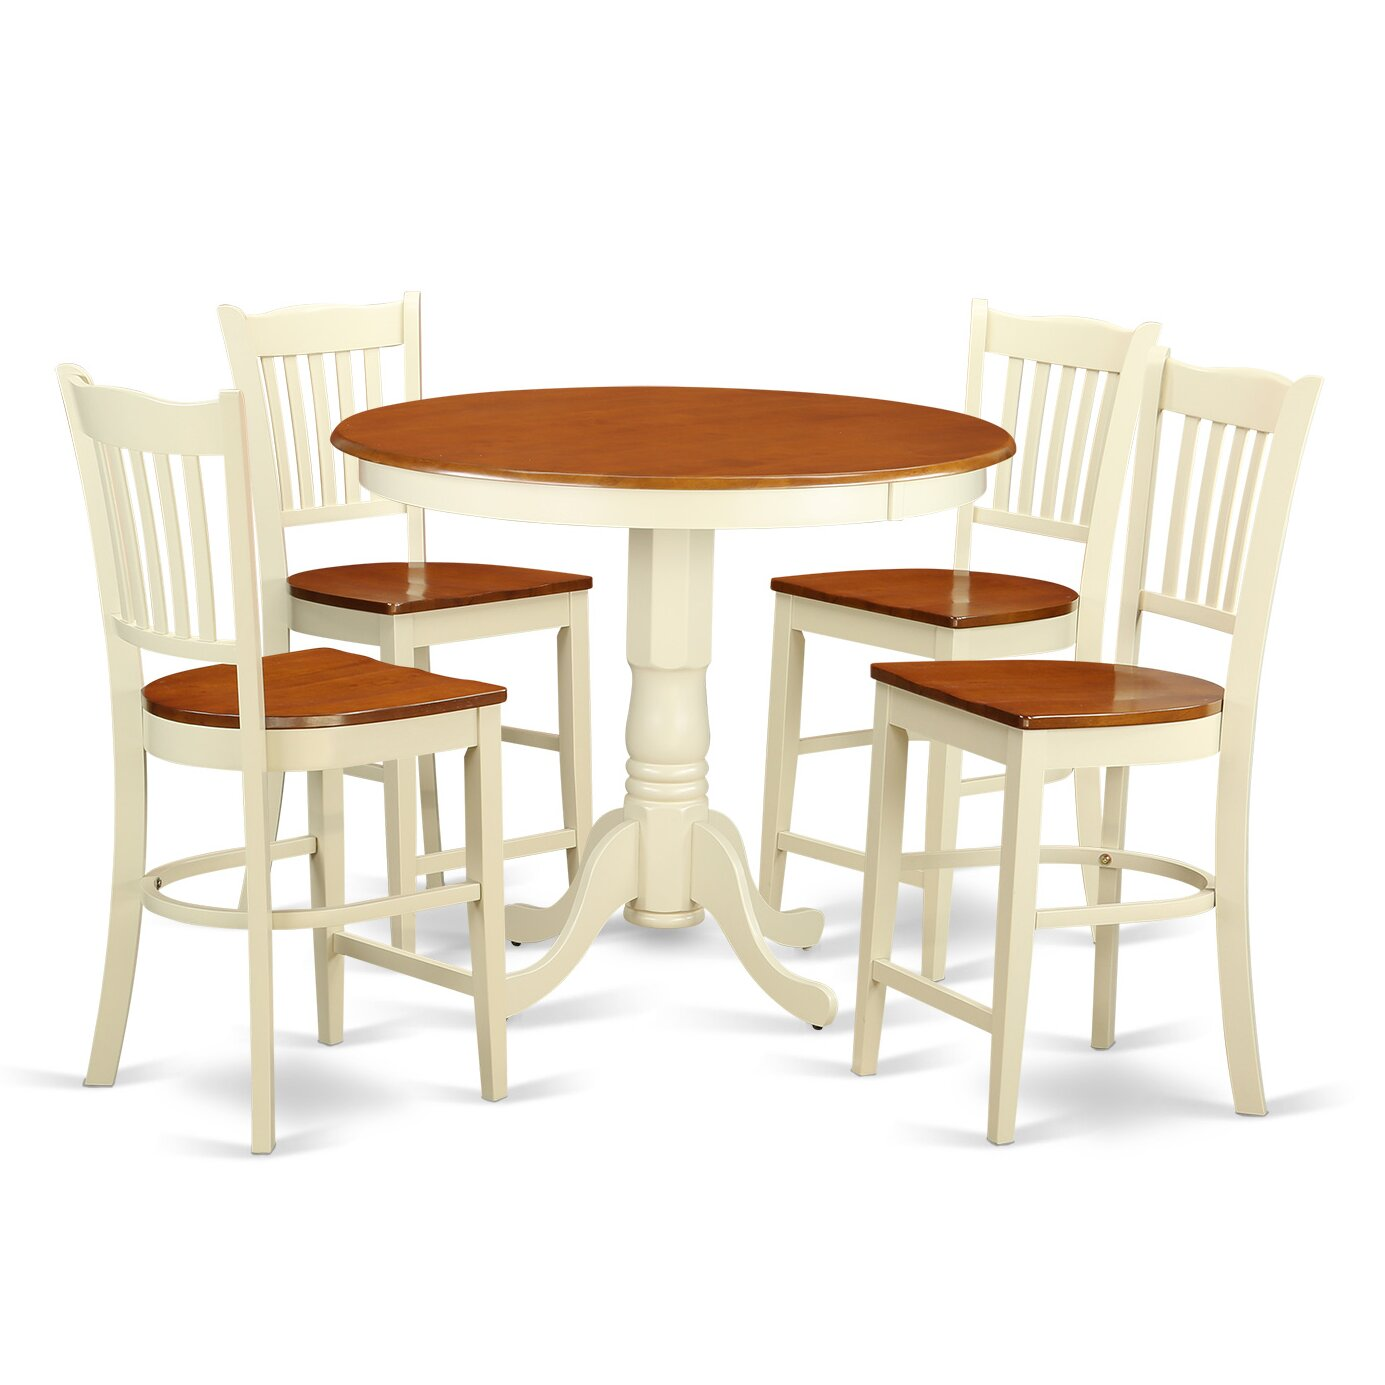 East west jackson 5 piece counter height pub table set for Table and bar stools